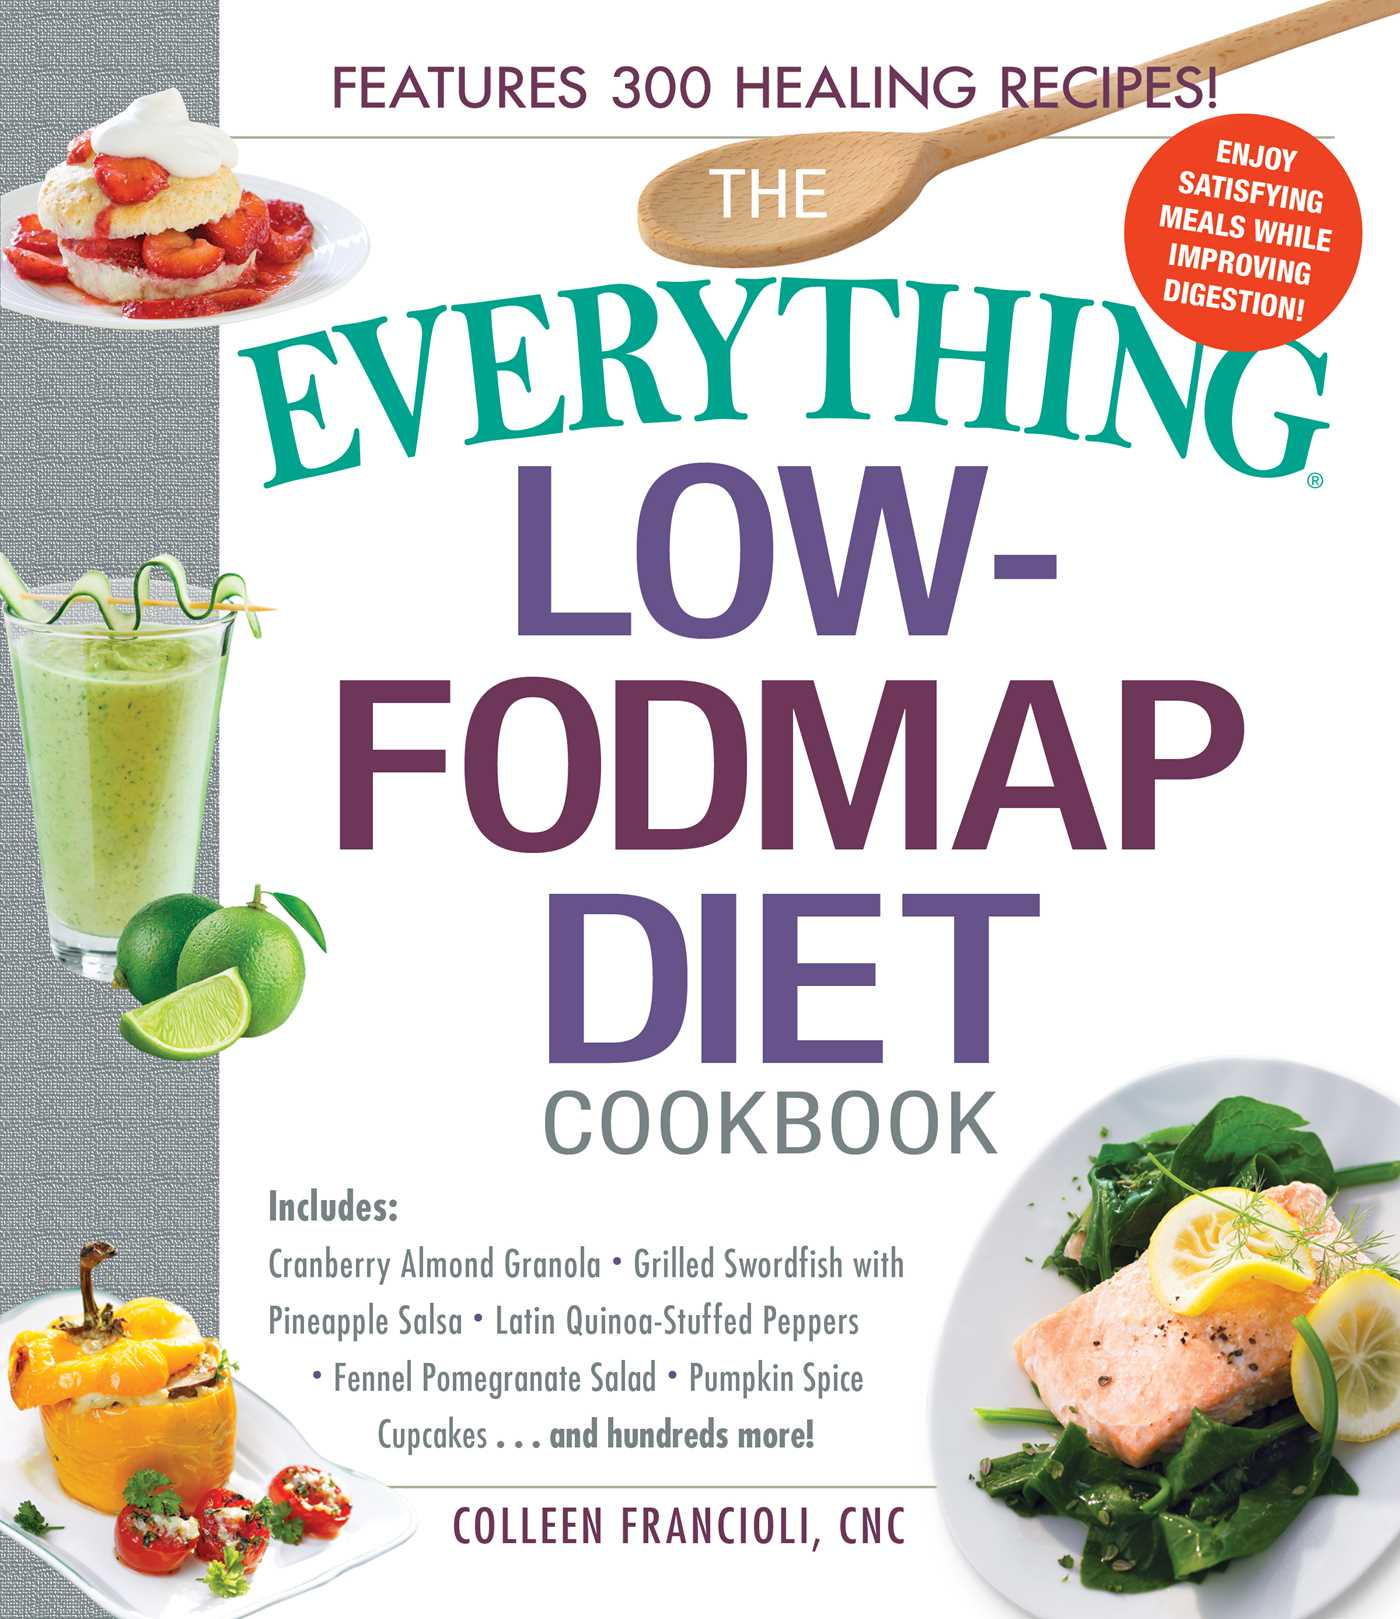 The everything low fodmap diet cookbook 9781440595295 hr